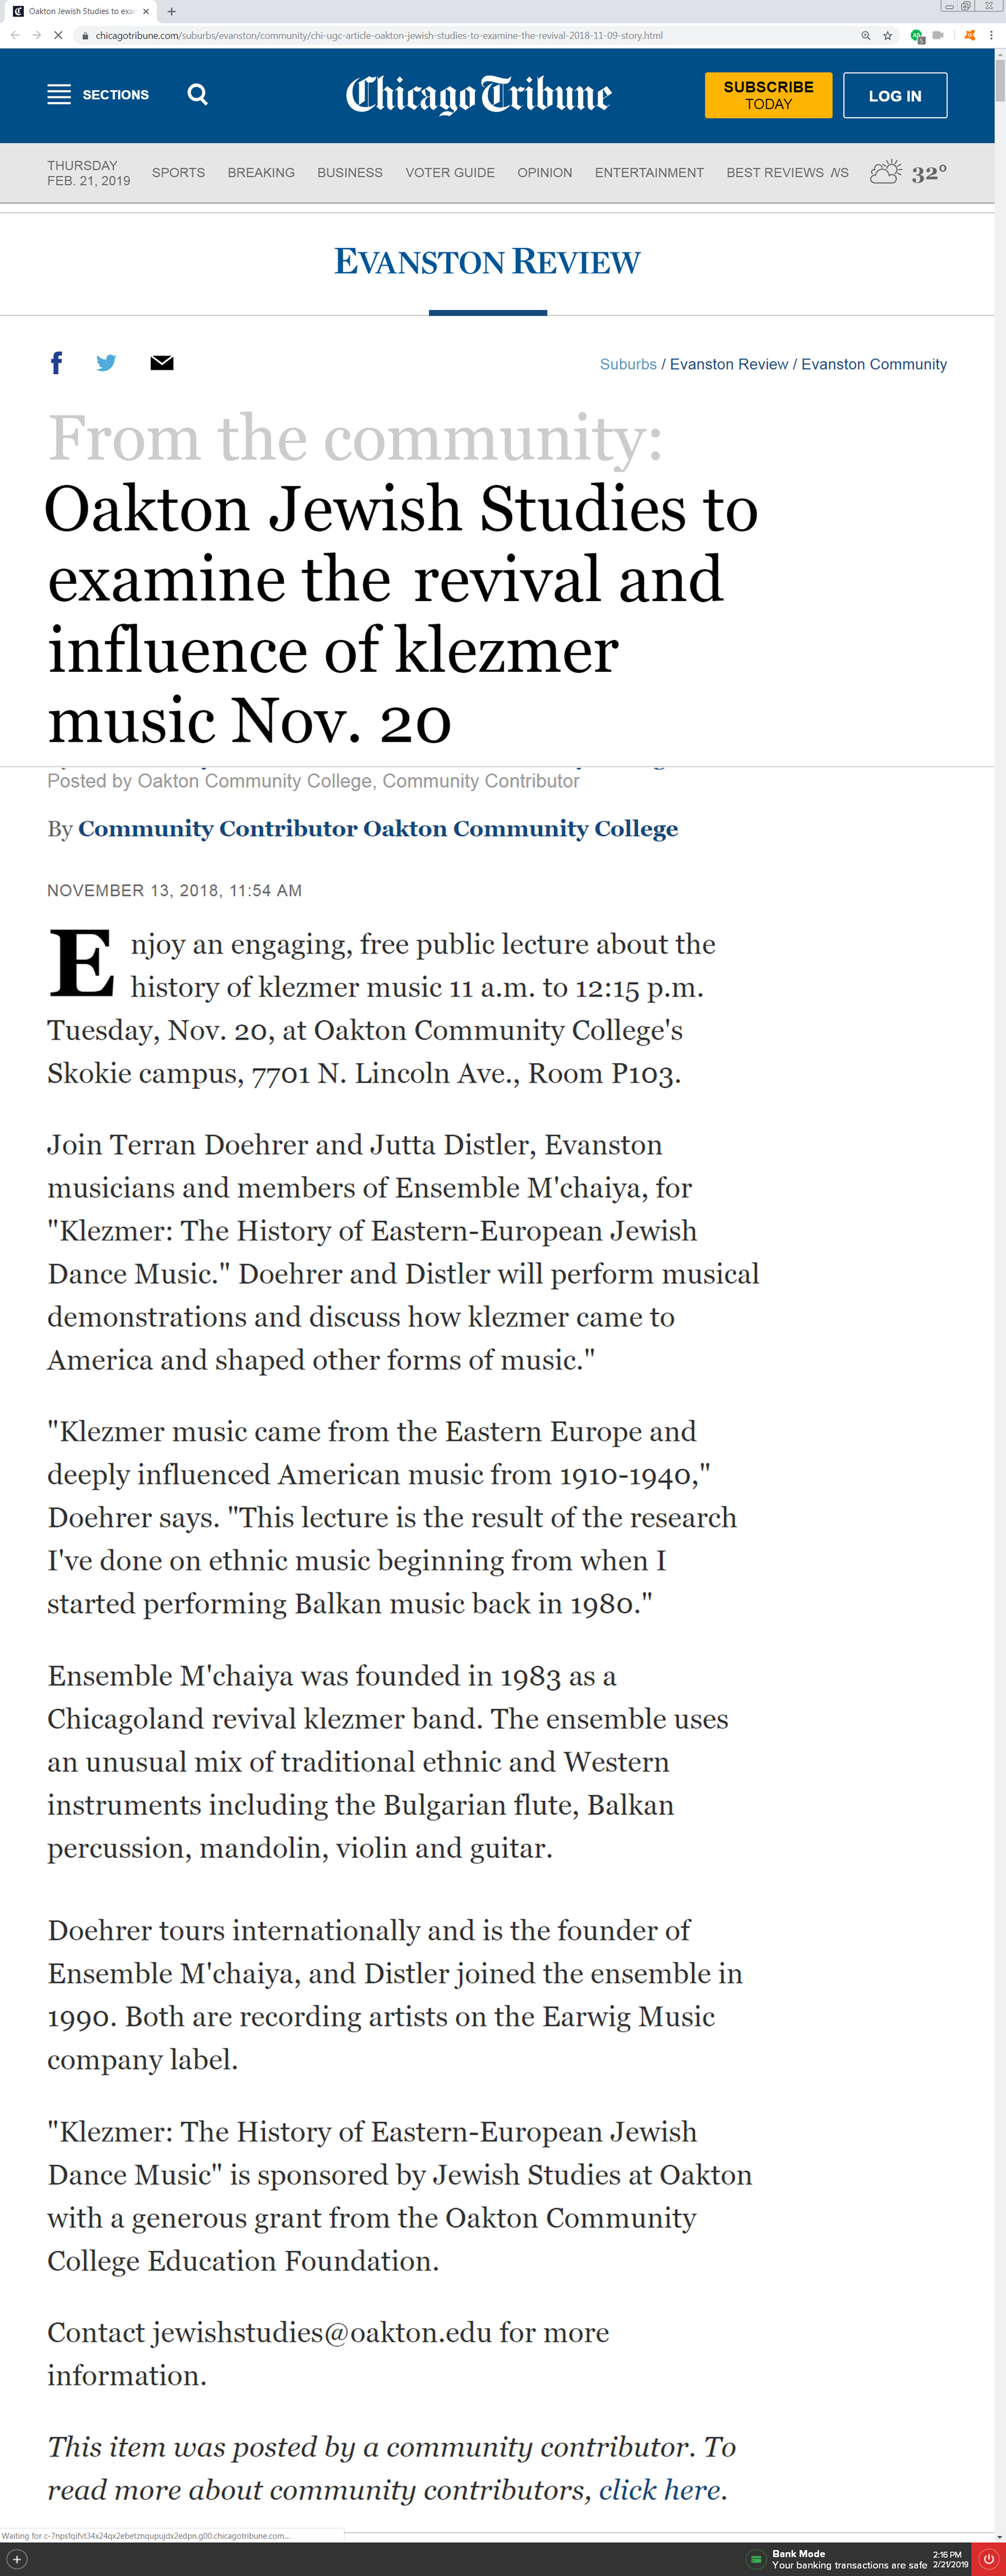 Article in the Chicago Tribune — Evanston Review From The Community's announcing the Ensemble M'chaiya (tm)'s lecture about Klezmer at Oakton Community College.